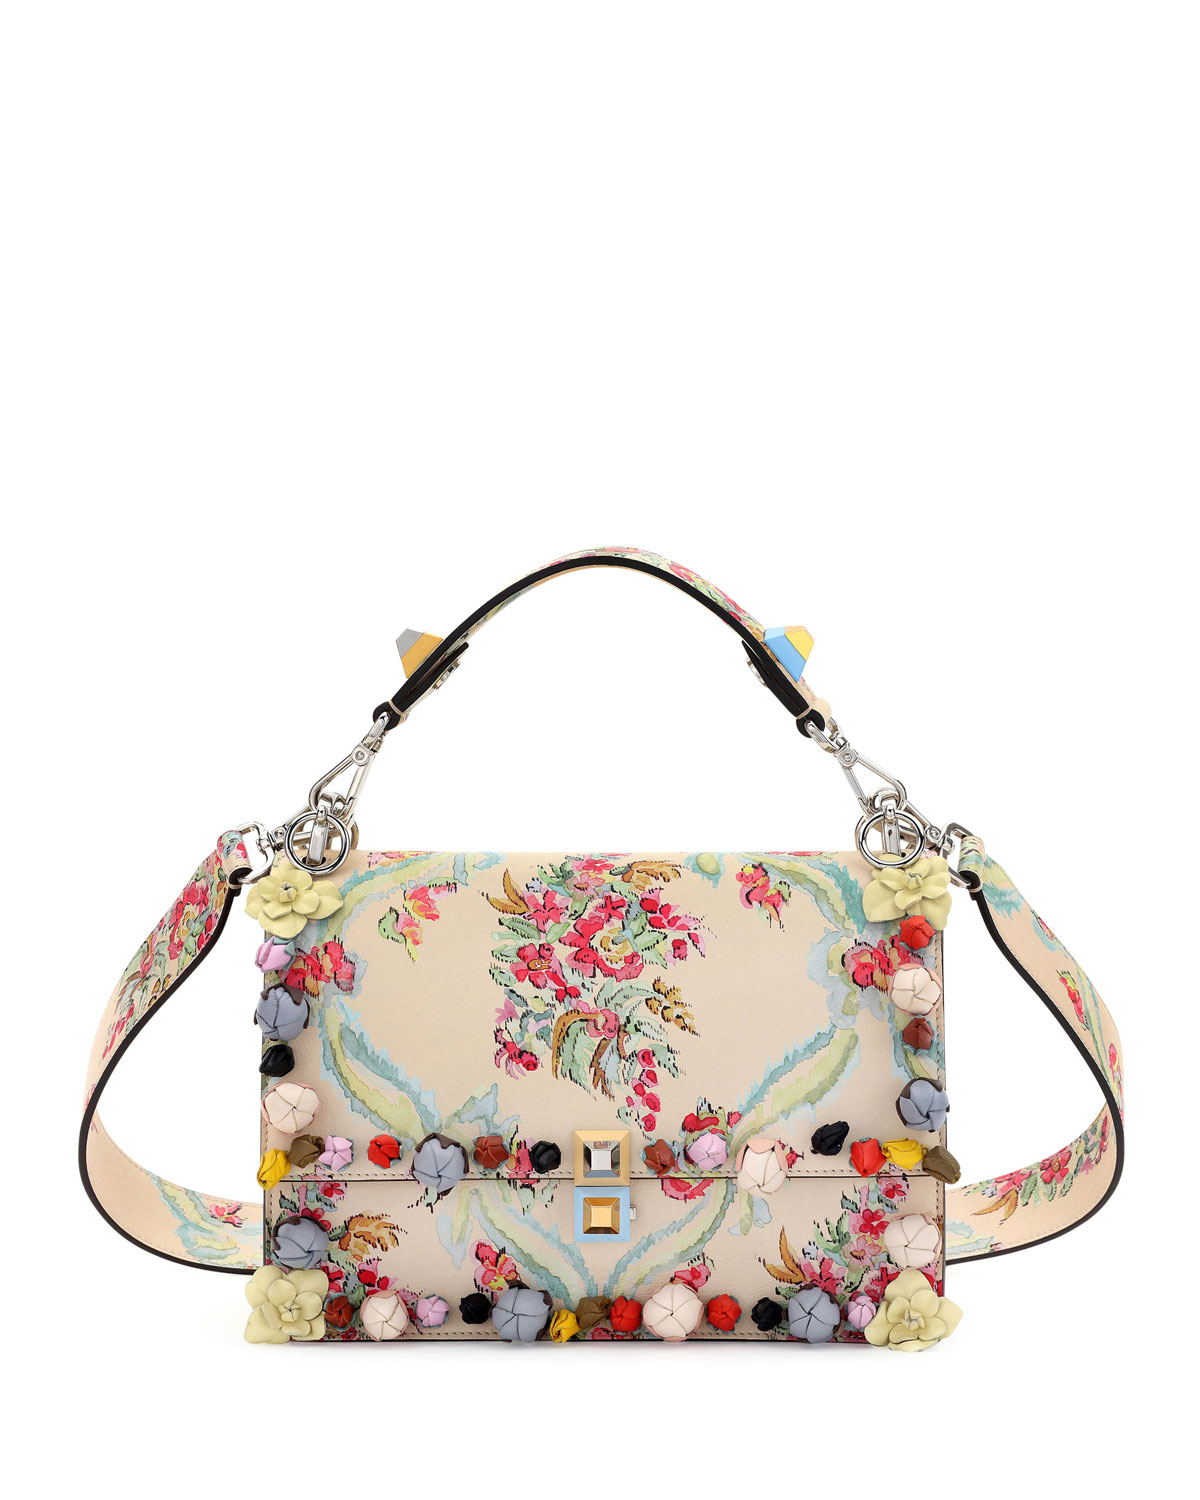 e309a2407e Fendi Kan I Floral Leather Shoulder Bag, Cream | Neiman Marcus